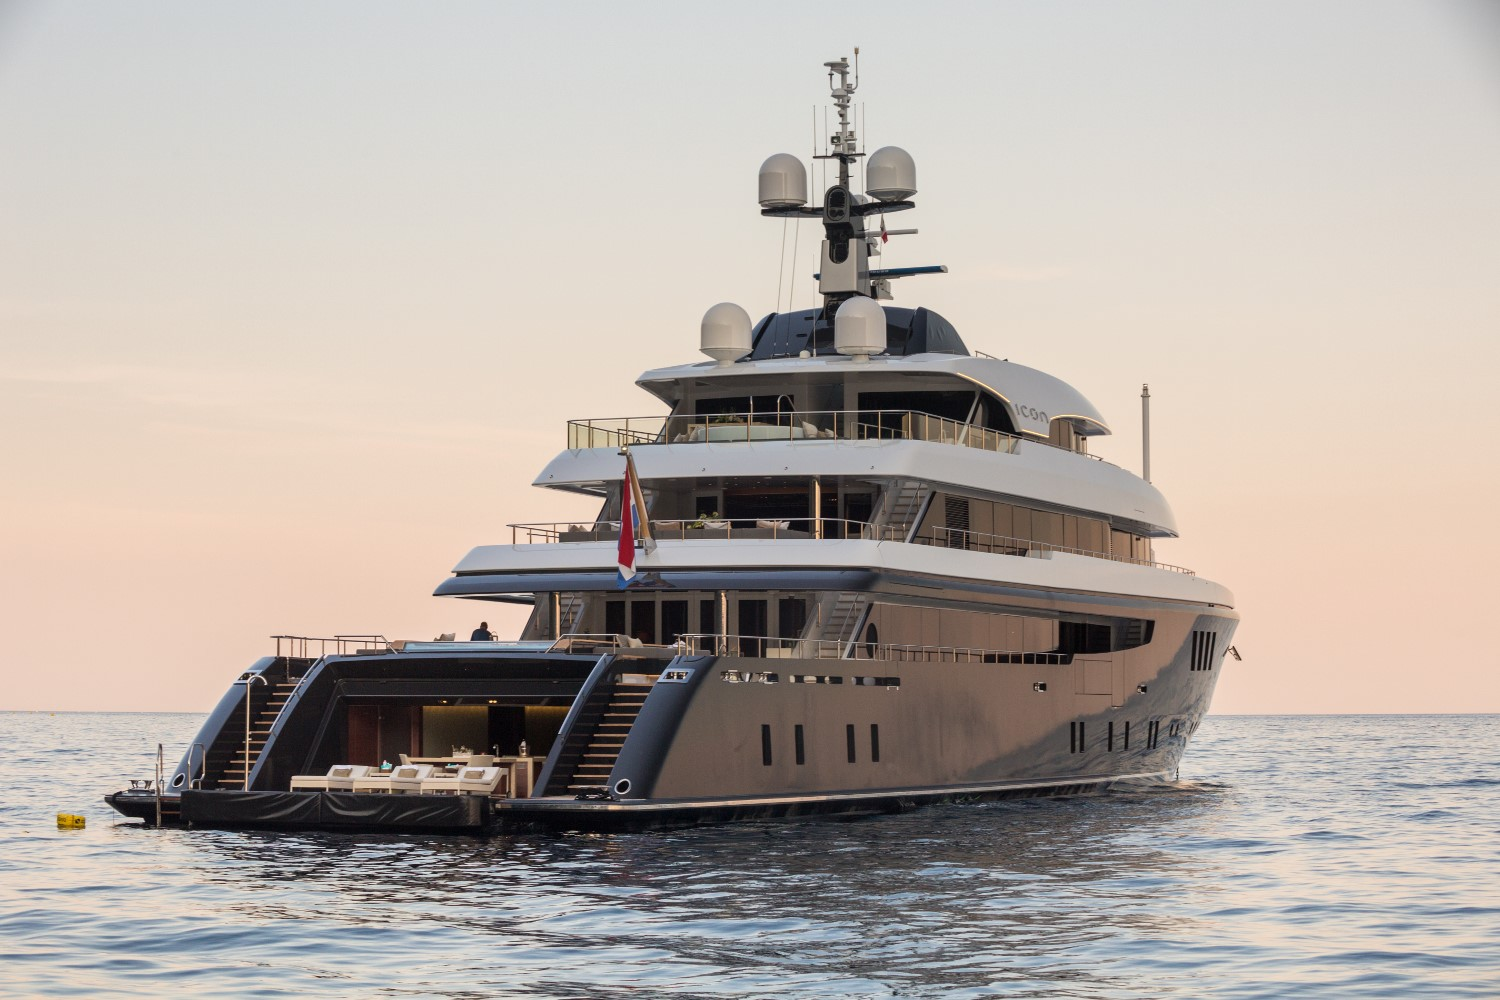 A Look Inside Superacht – Luxury yachts and boats ()